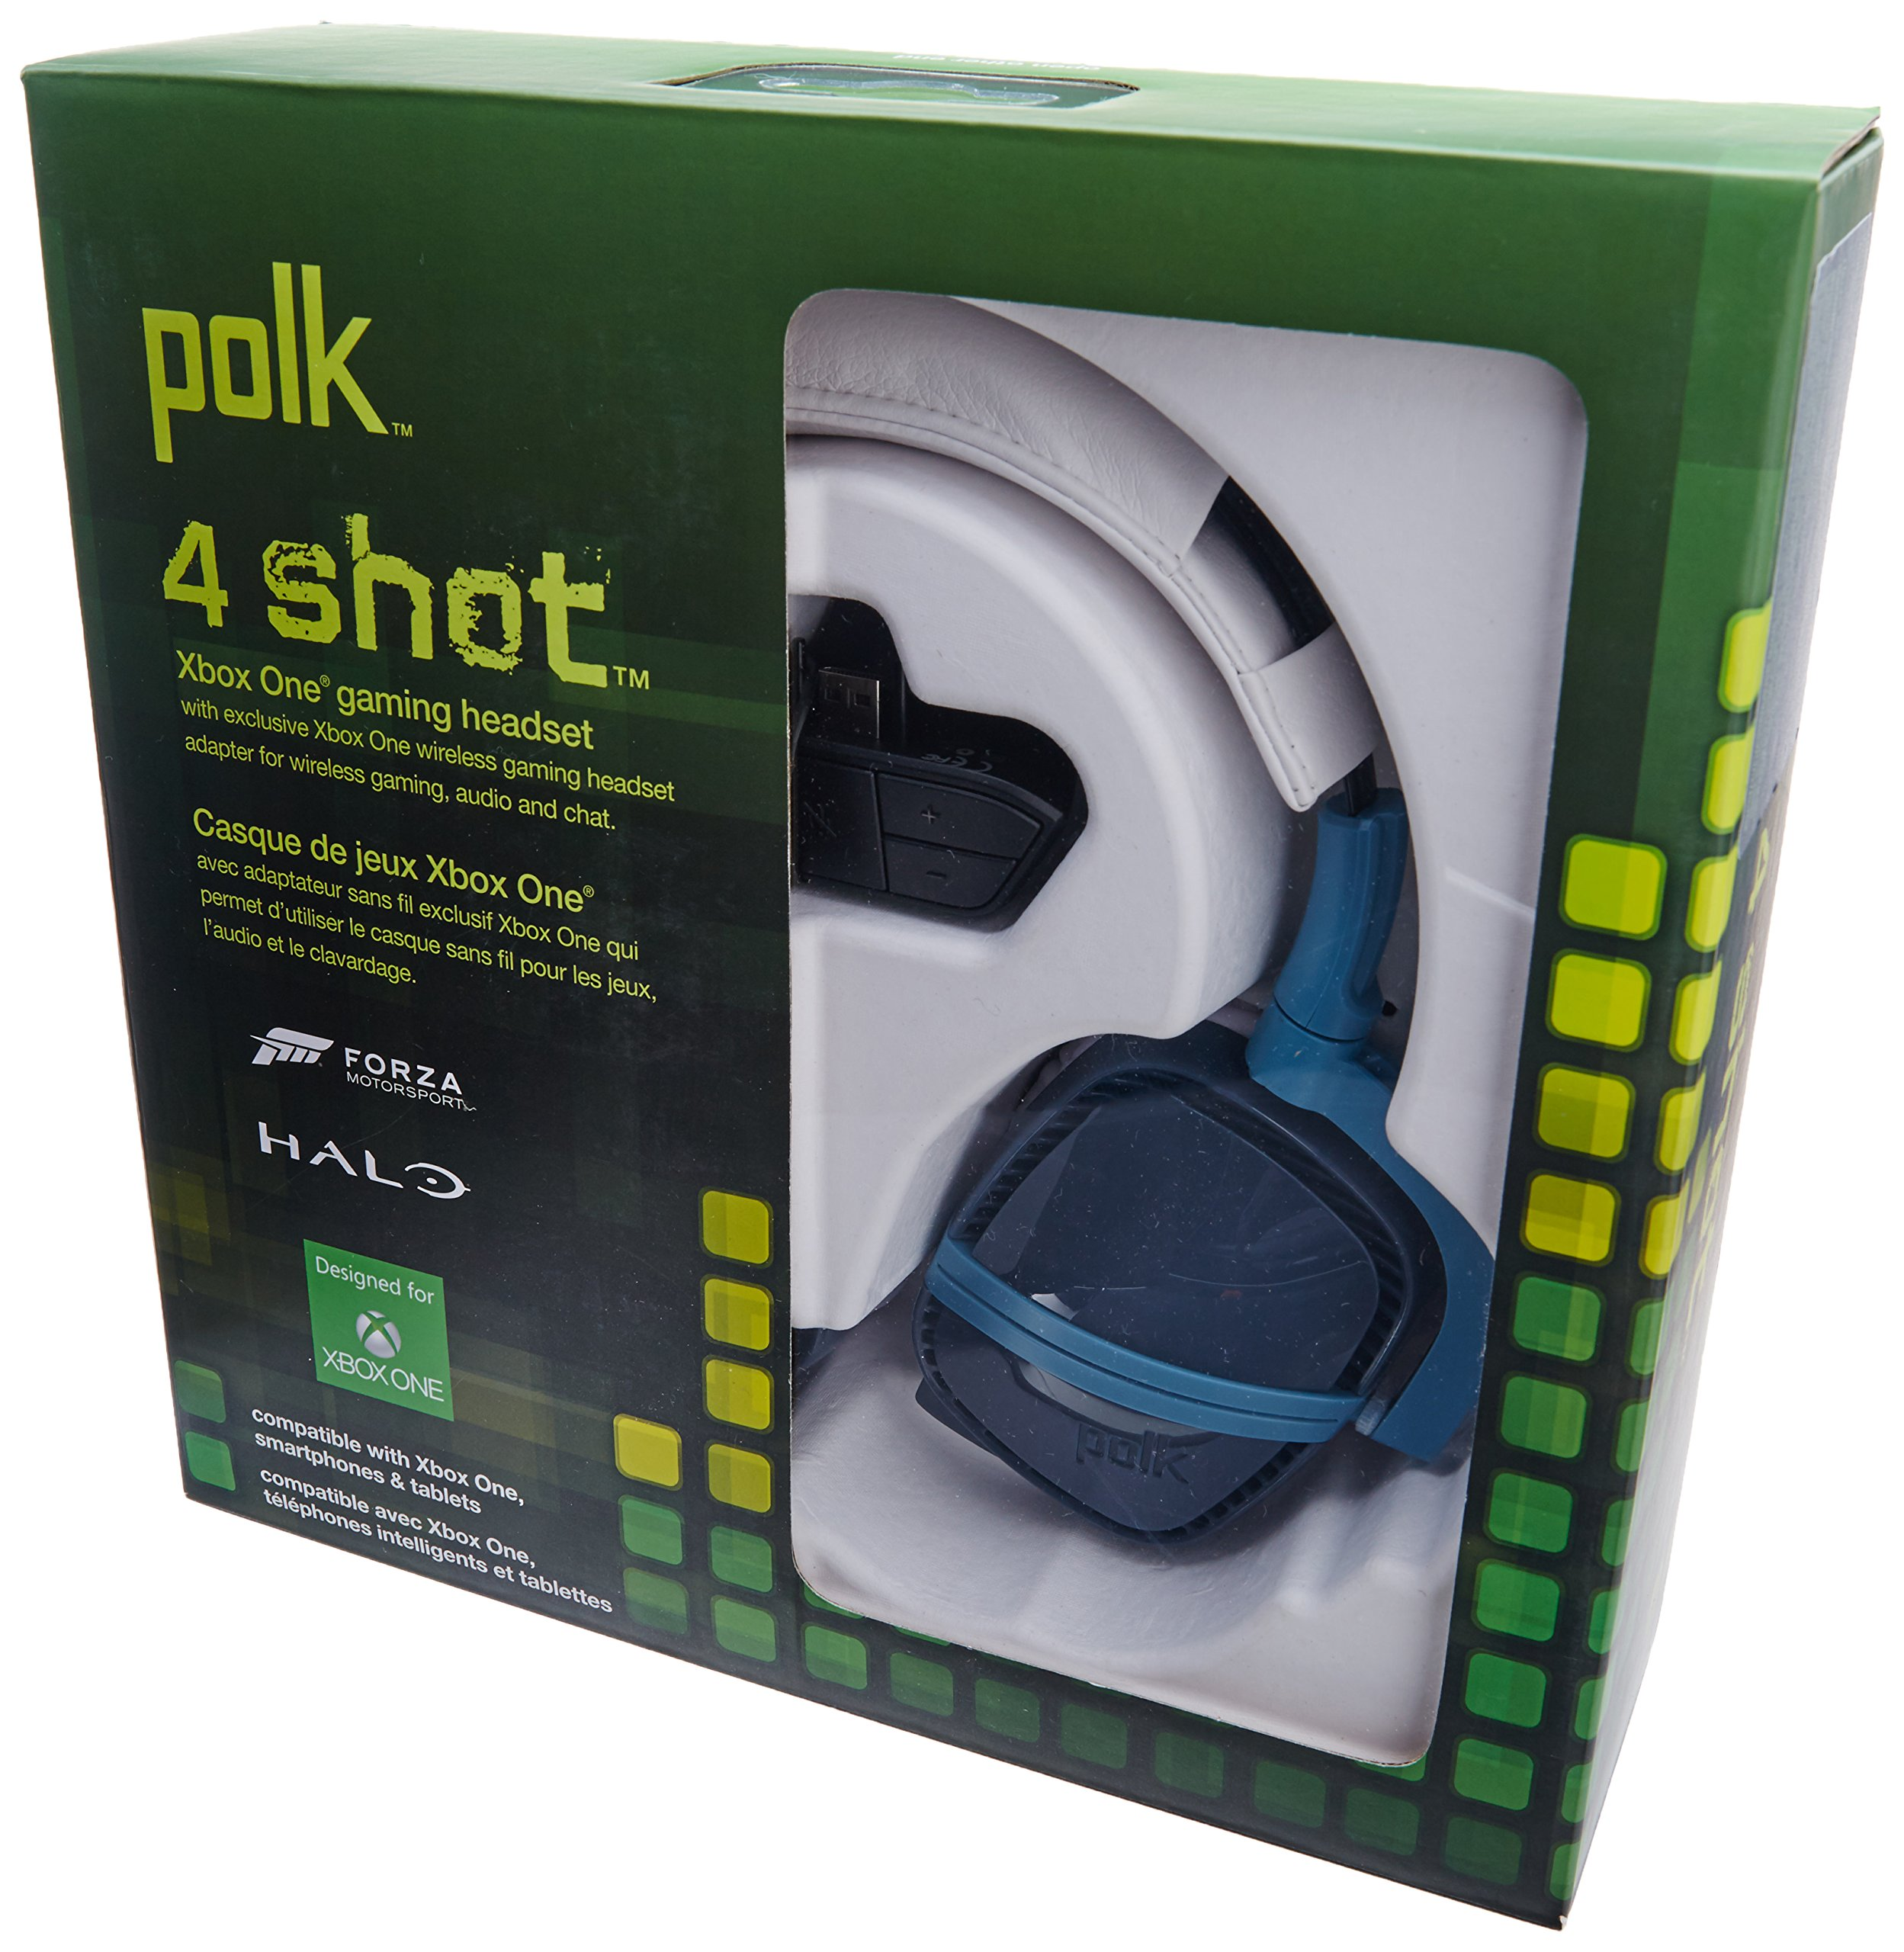 Polk Audio 4Shot Headphone - Blue - Xbox One